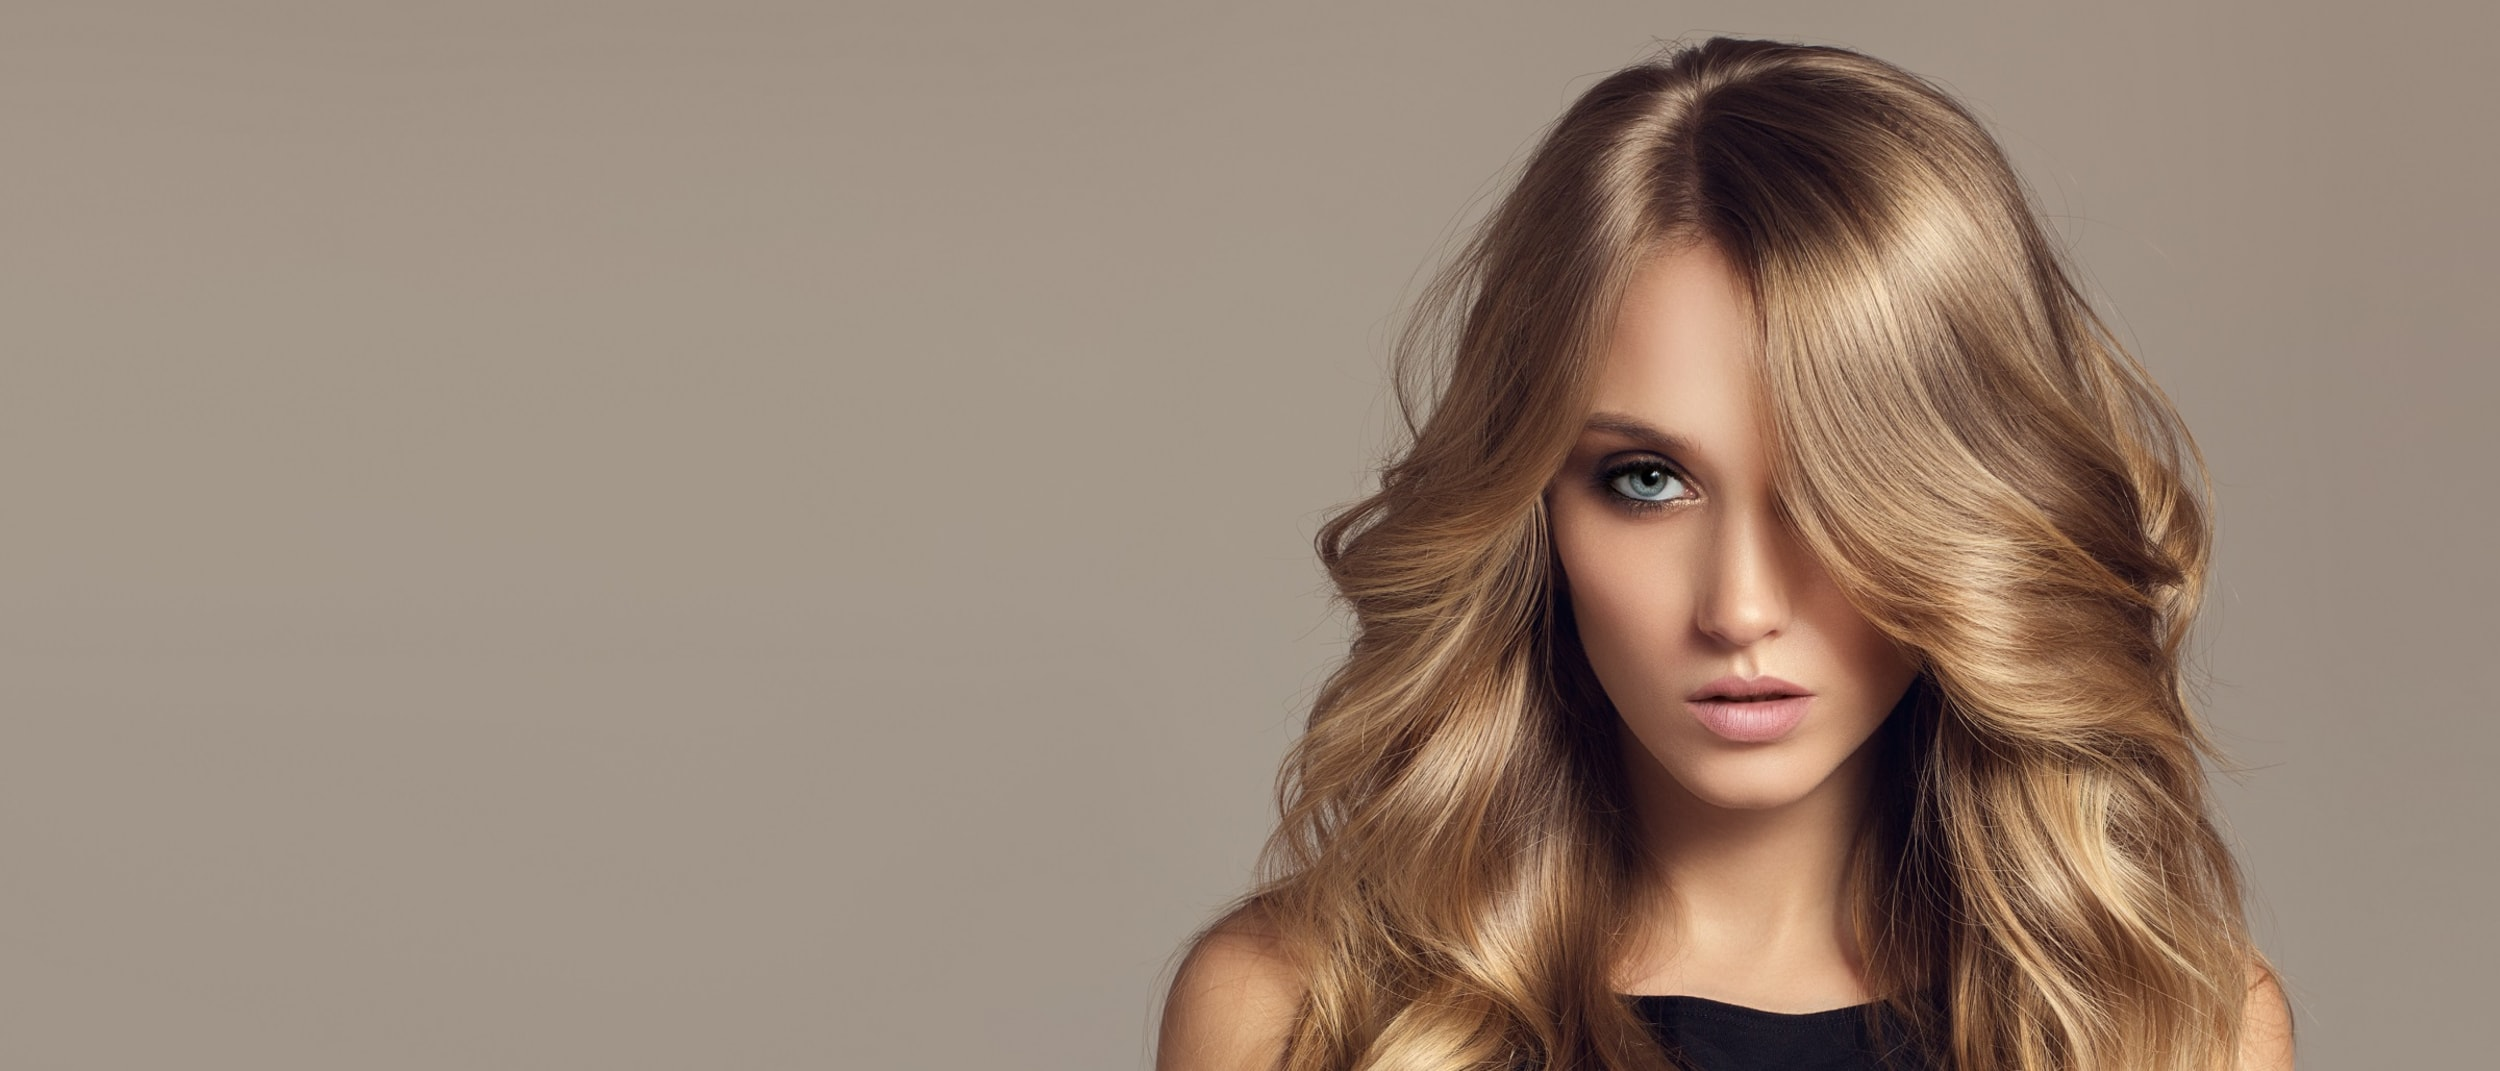 Brazilian Keratin Treatment from $169